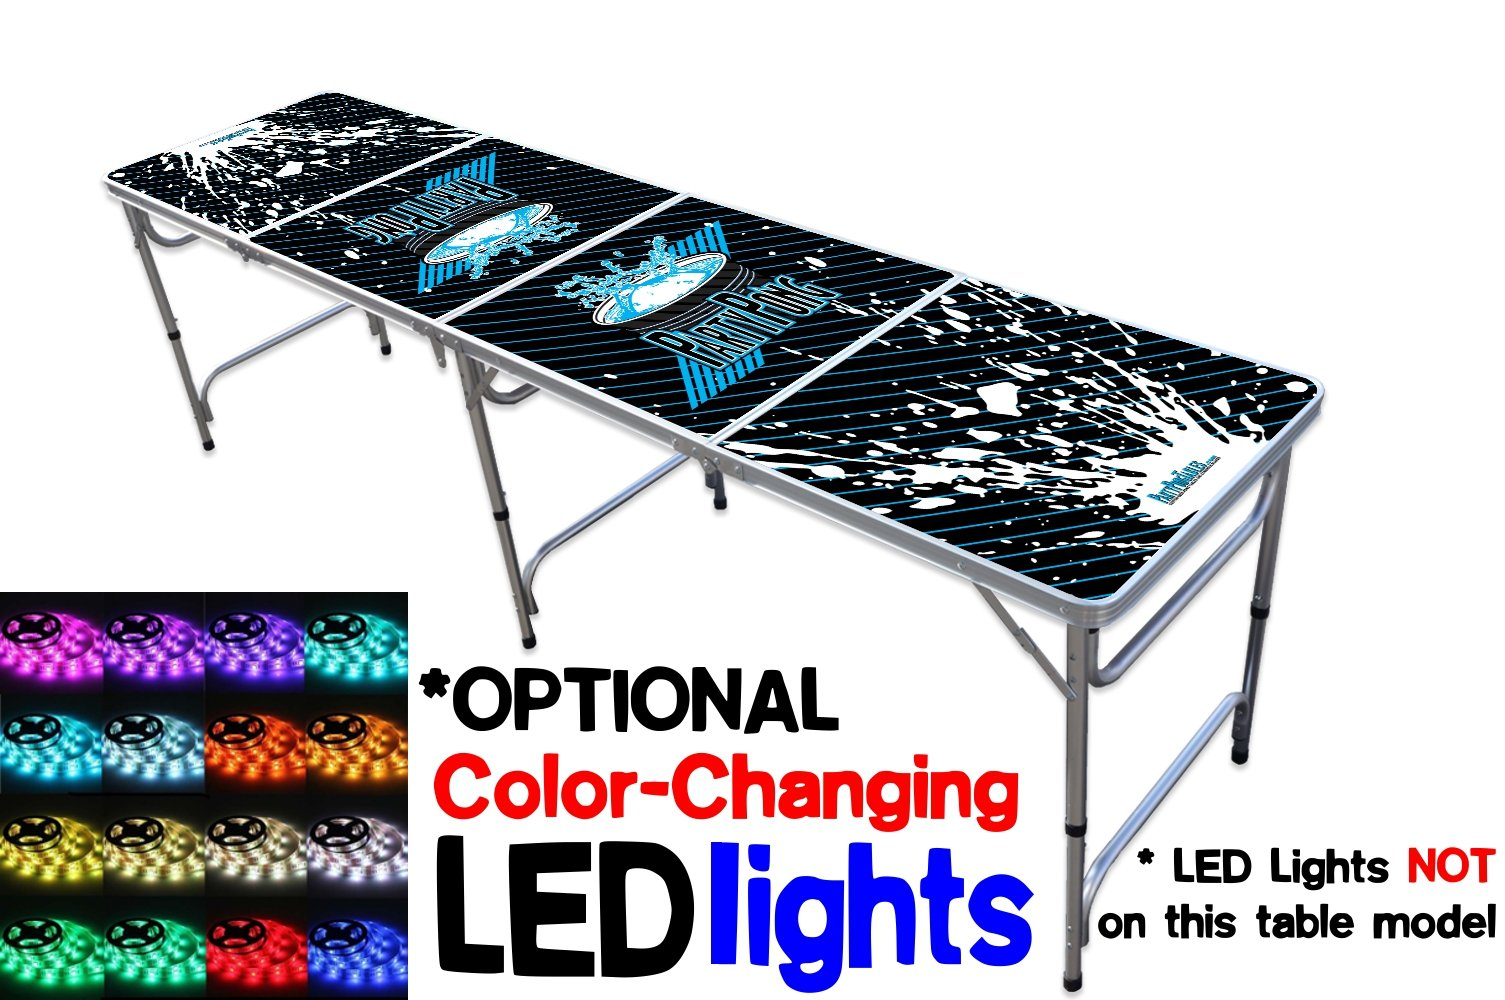 Portable Folding Table w/ PARTY PONG Graphic - Adjustable Length (8 ft or 4 ft) Adjustable Height (Kid Size & Standard Size) Party Table